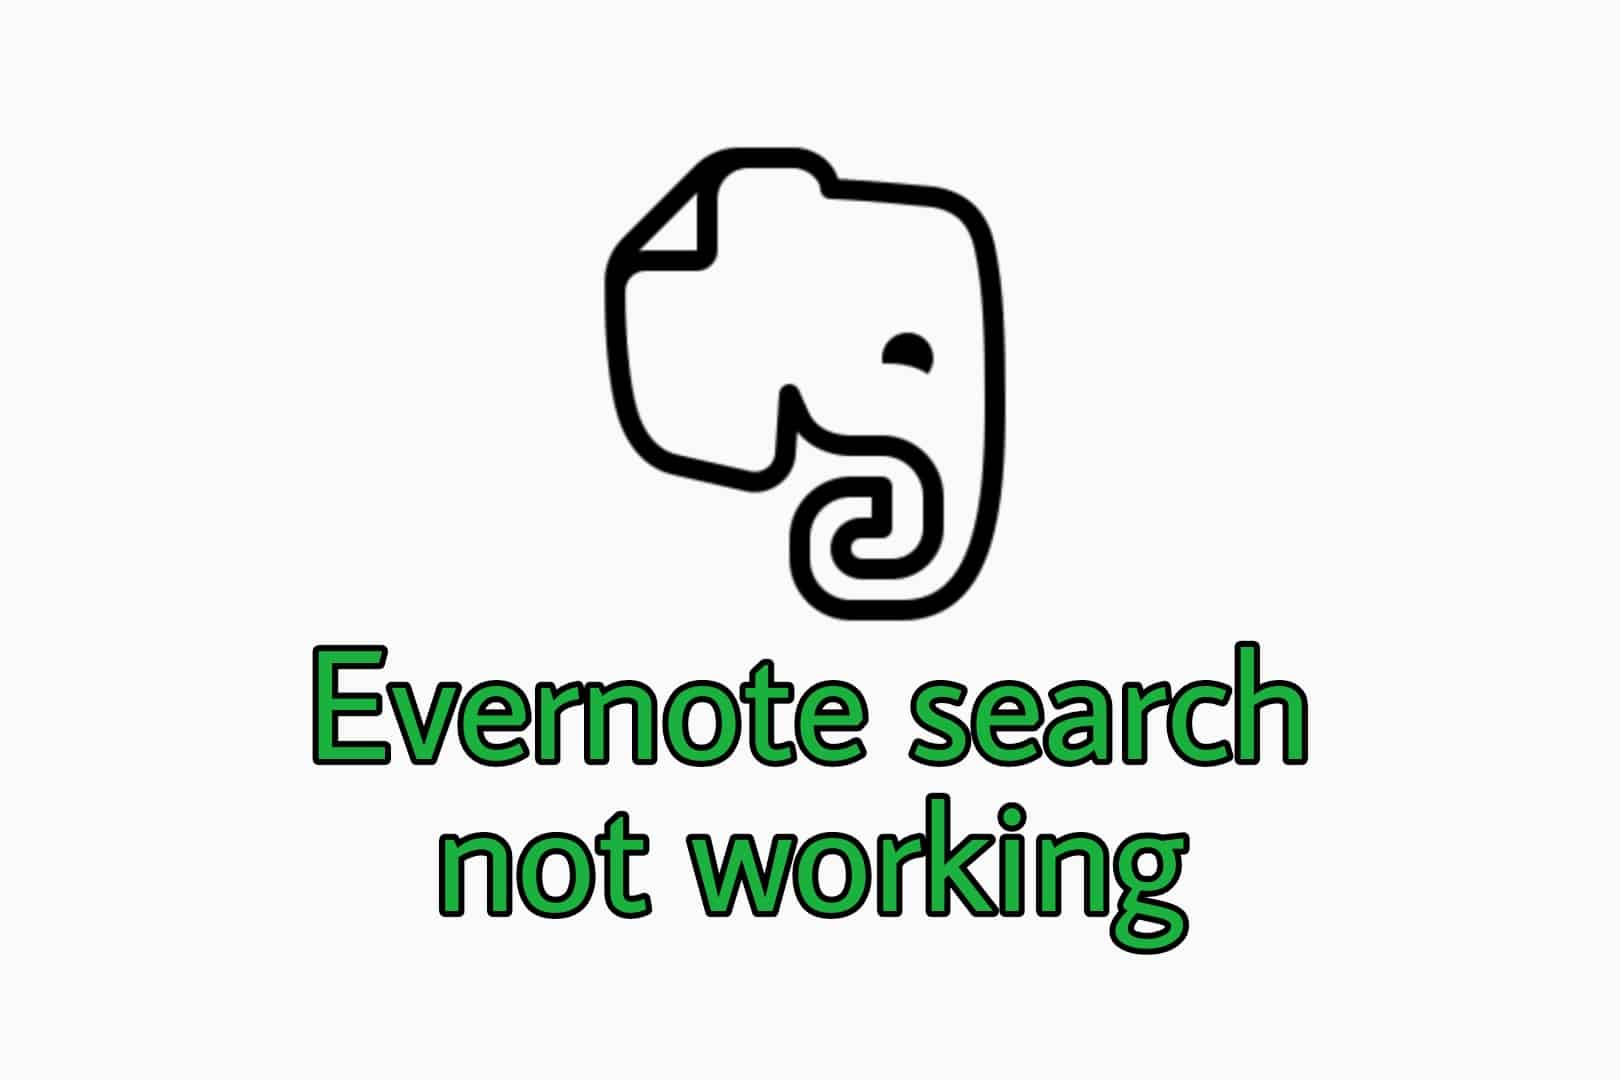 Evernote search not working